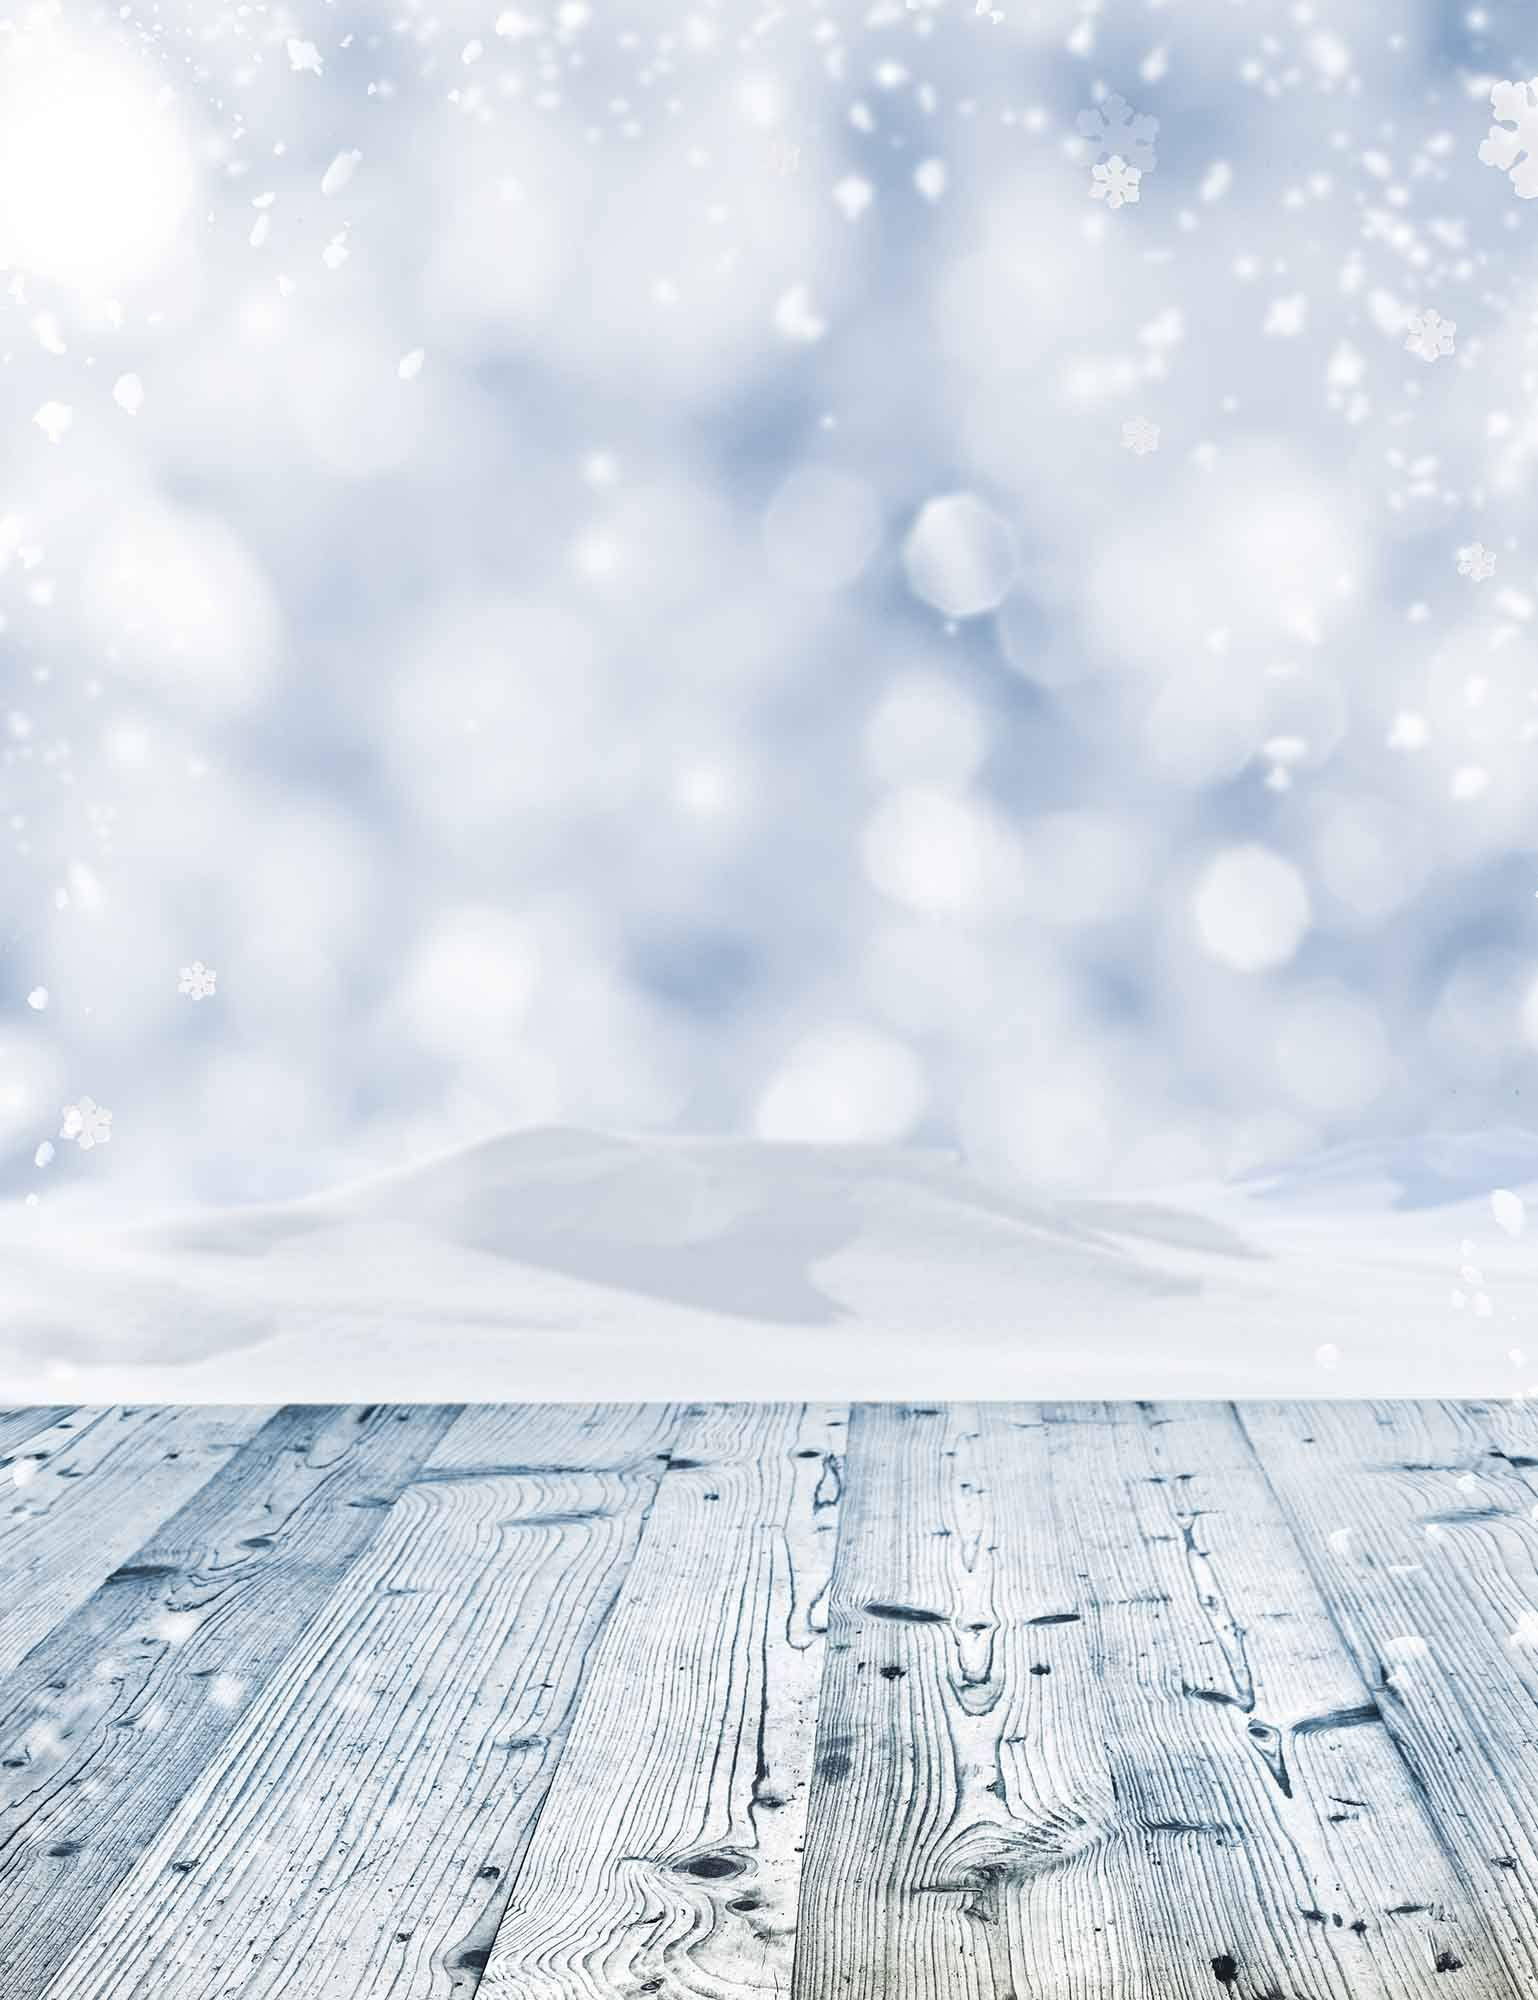 Snow Silver Bokeh Sparkled With Wood Floor Background For